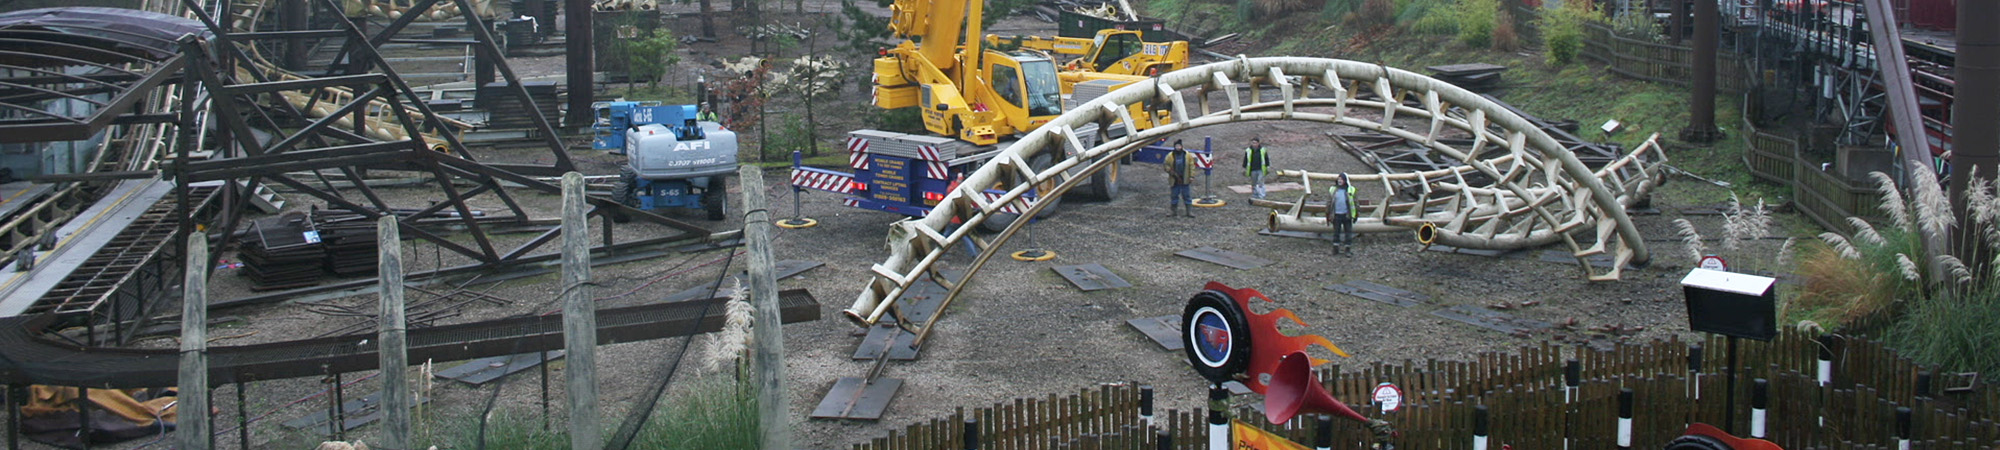 Corkscrew track being removed via a crane from the ride